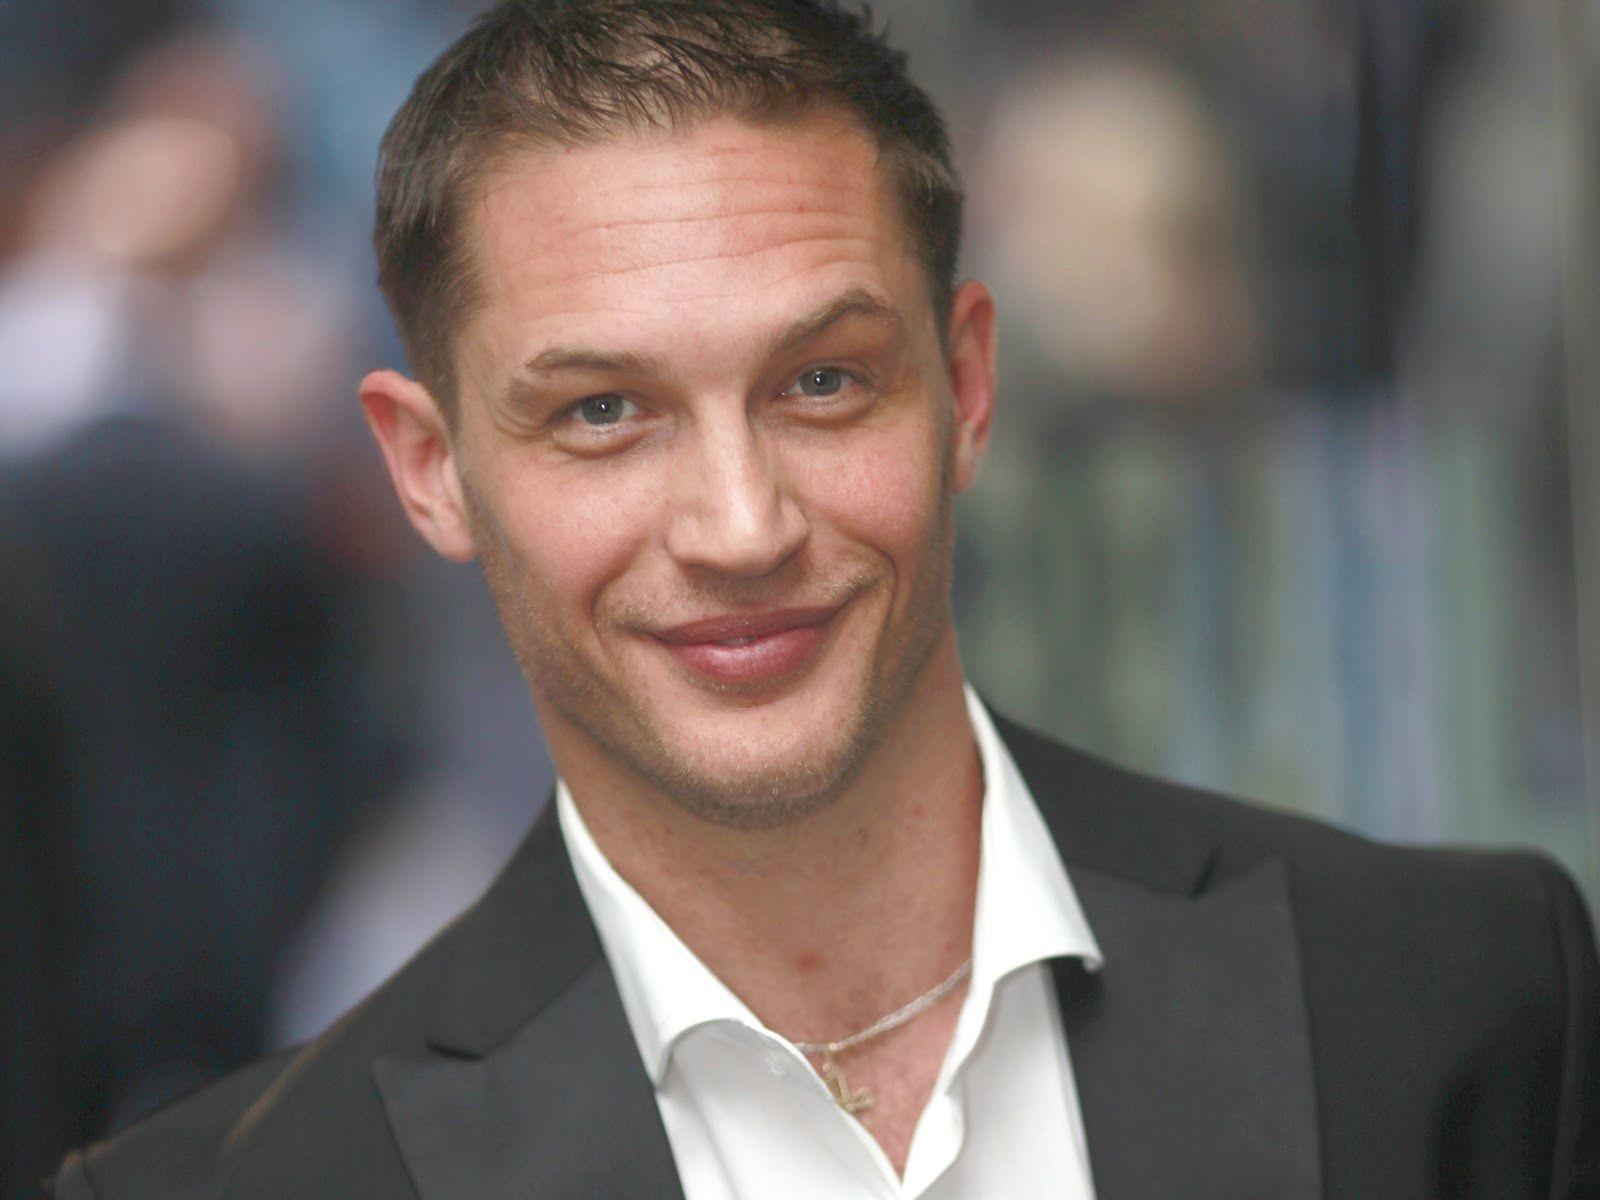 Actor Tom Hardy wallpapers and image